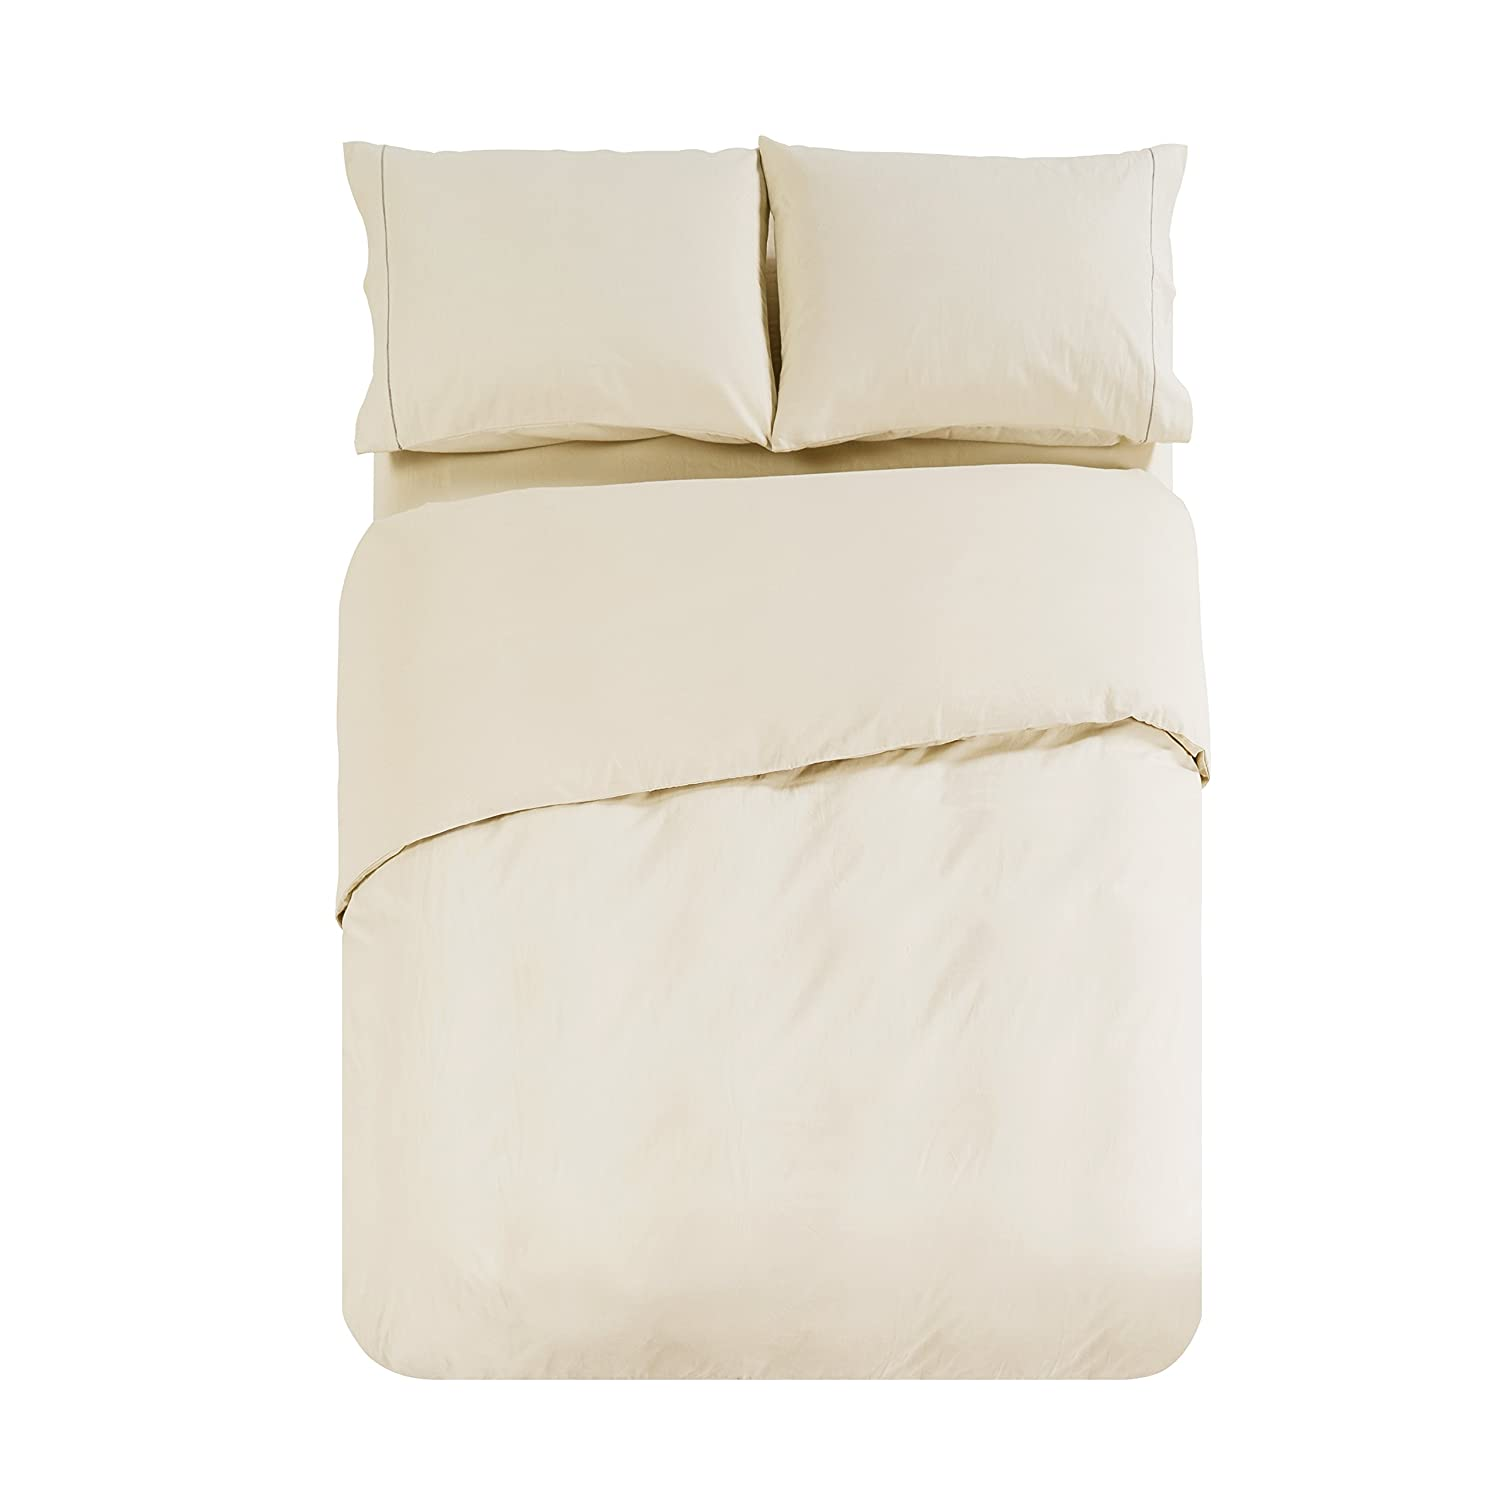 Beige 3 Piece Super Soft Melody House Hotel Quality 100/% Egyptian Cotton Duvet Cover Set Comfortable and Fade Resistant Queen